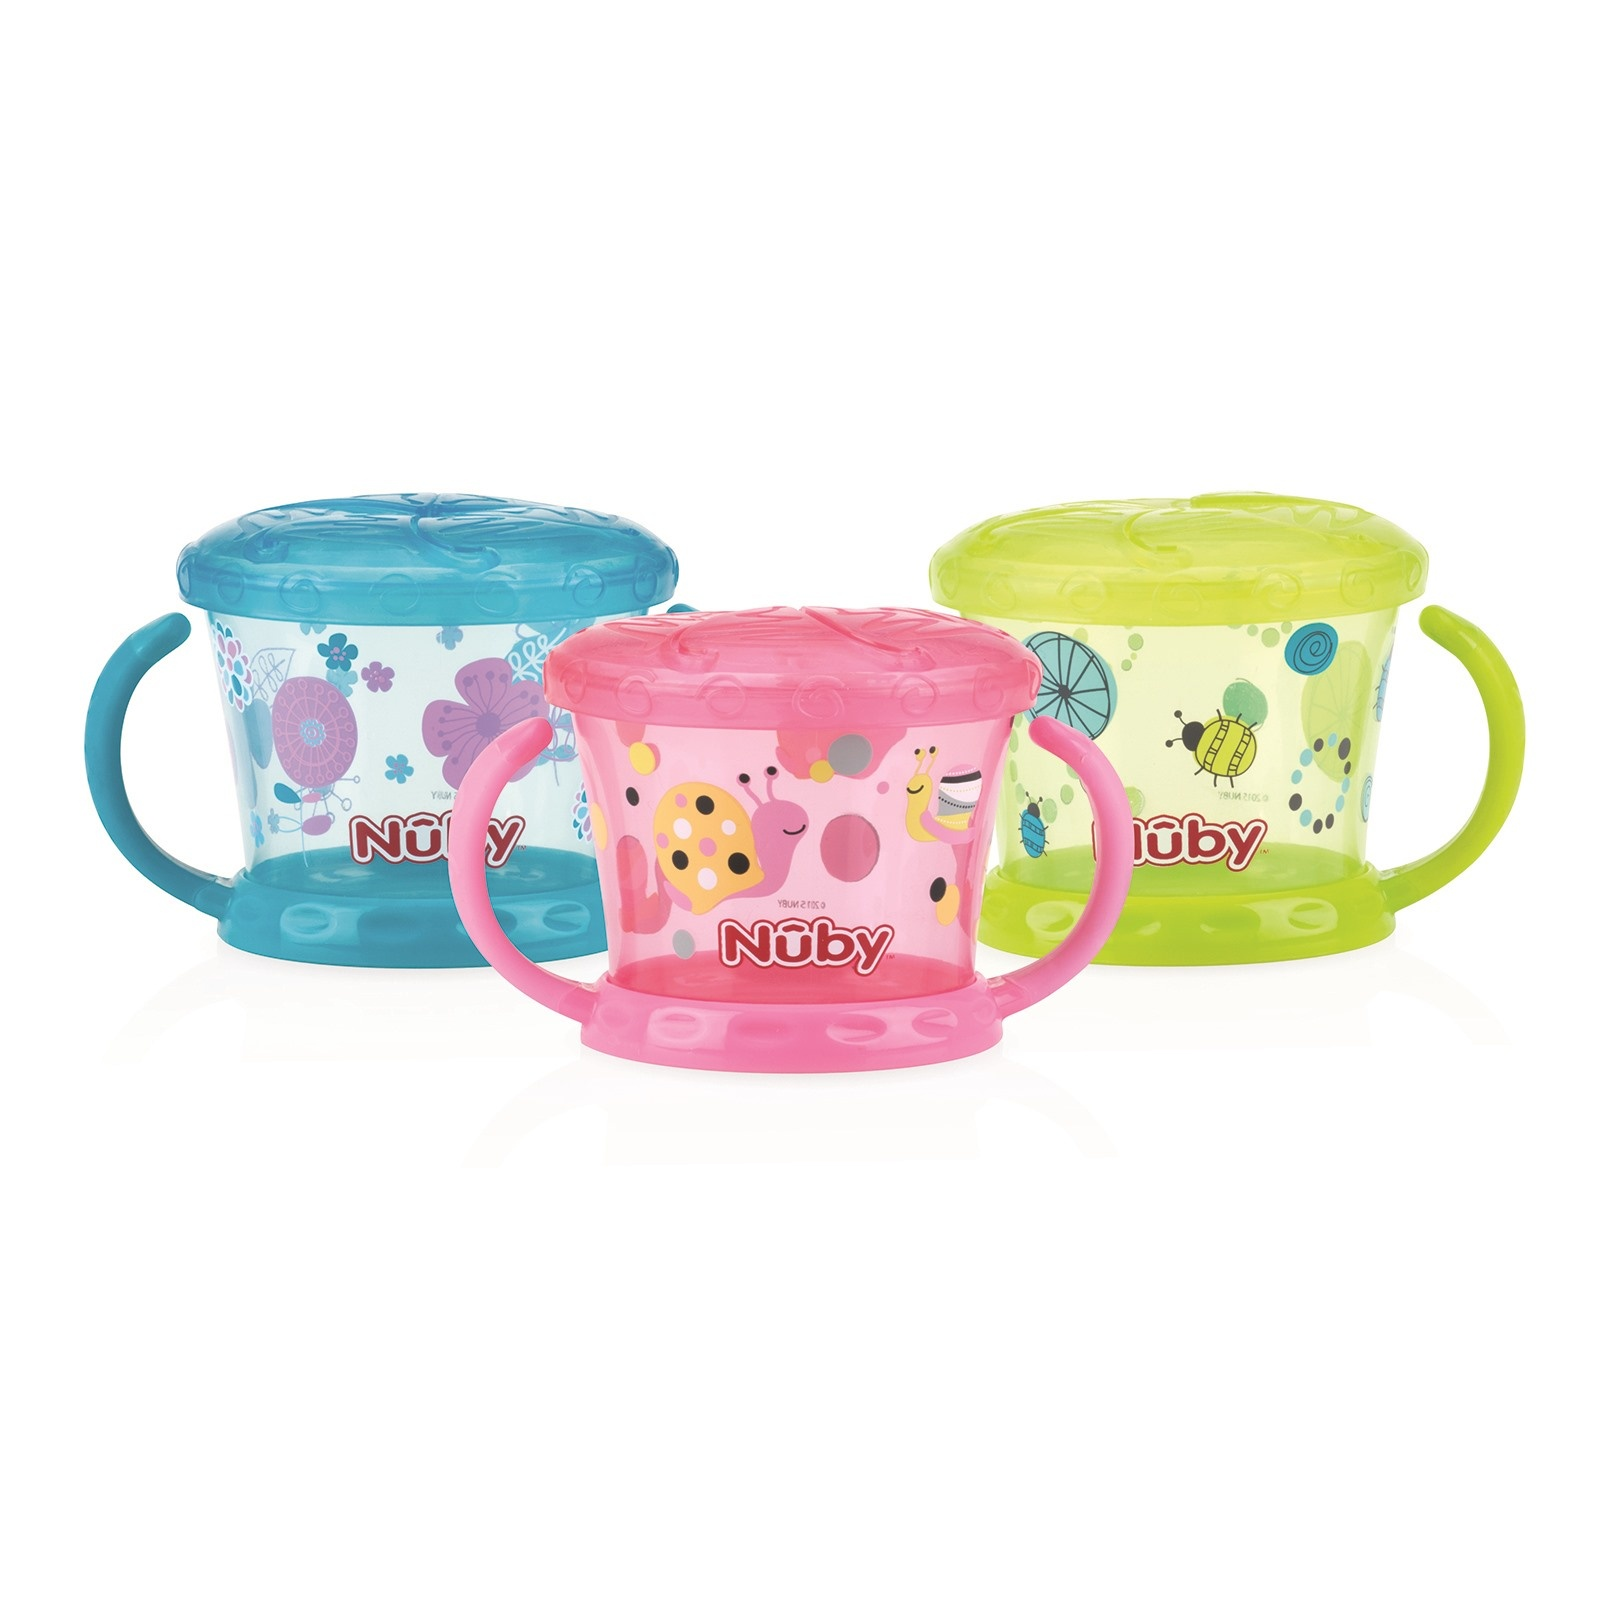 Ebebek Nuby Baby Training Bowl 12 Months+